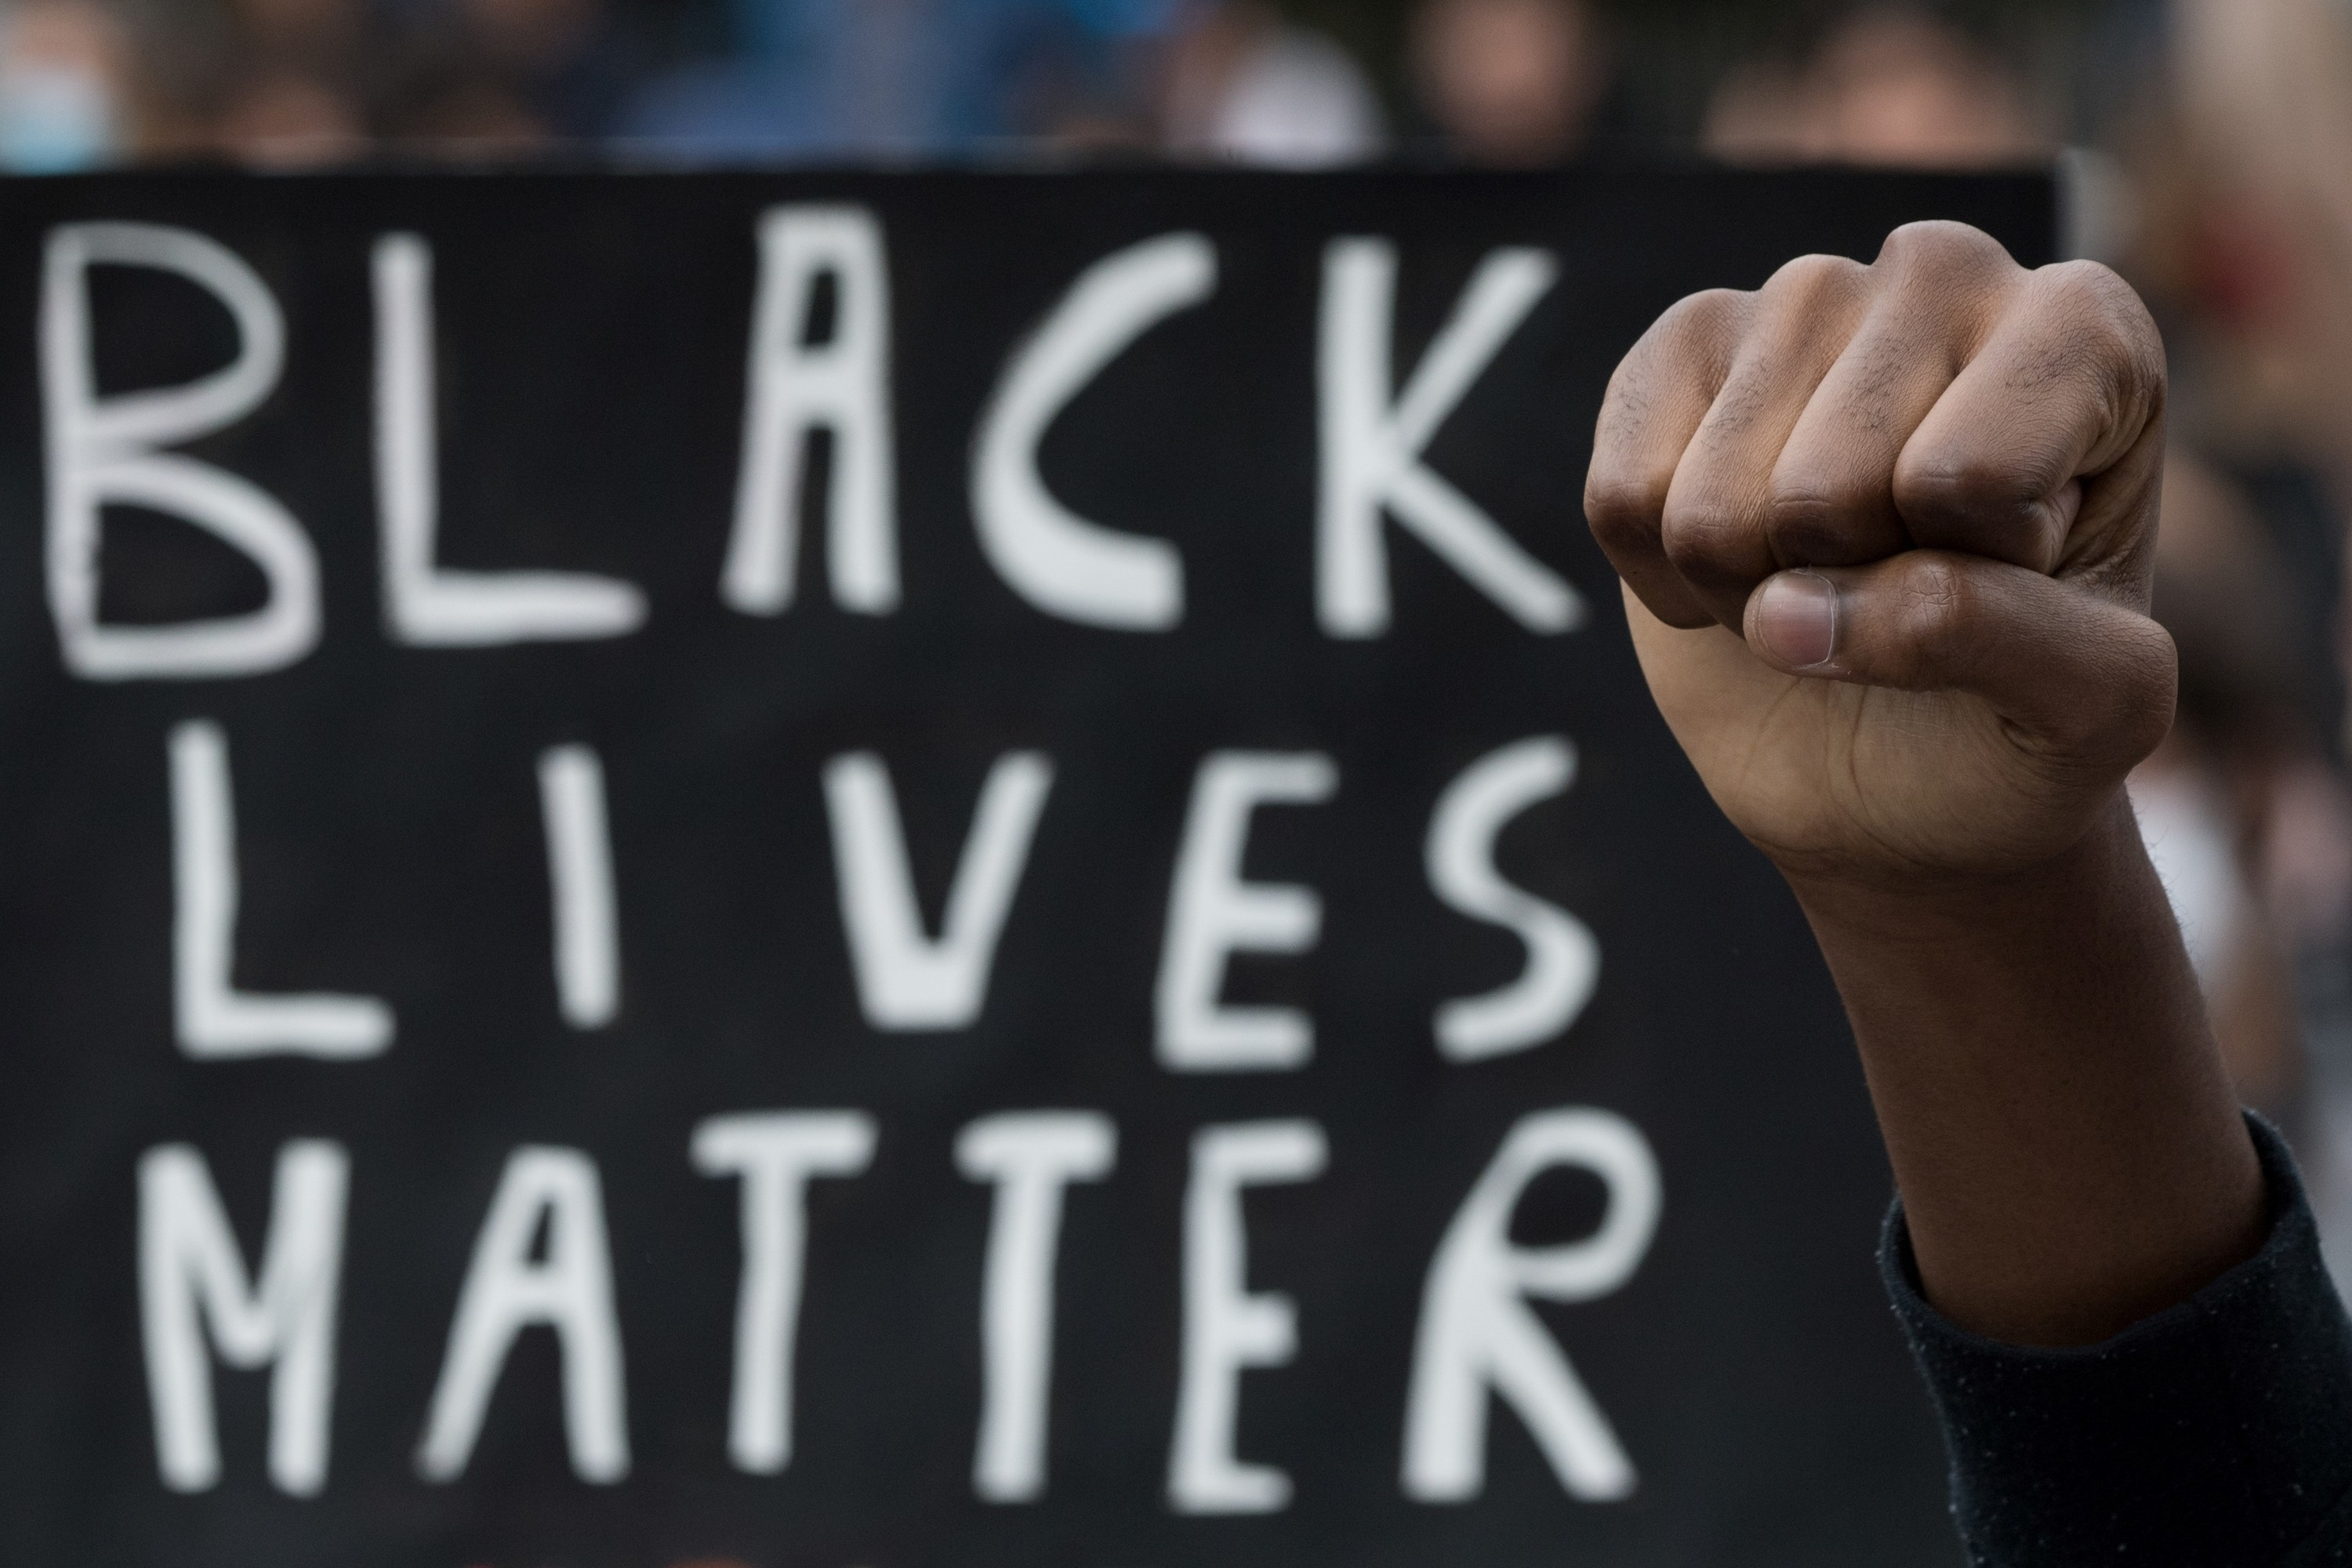 A Black person raises their fist in front of a Black Lives Matter protest sign 黒人の1人が「Black Lives Matter」と書かれた看板の前で、拳を掲げている。